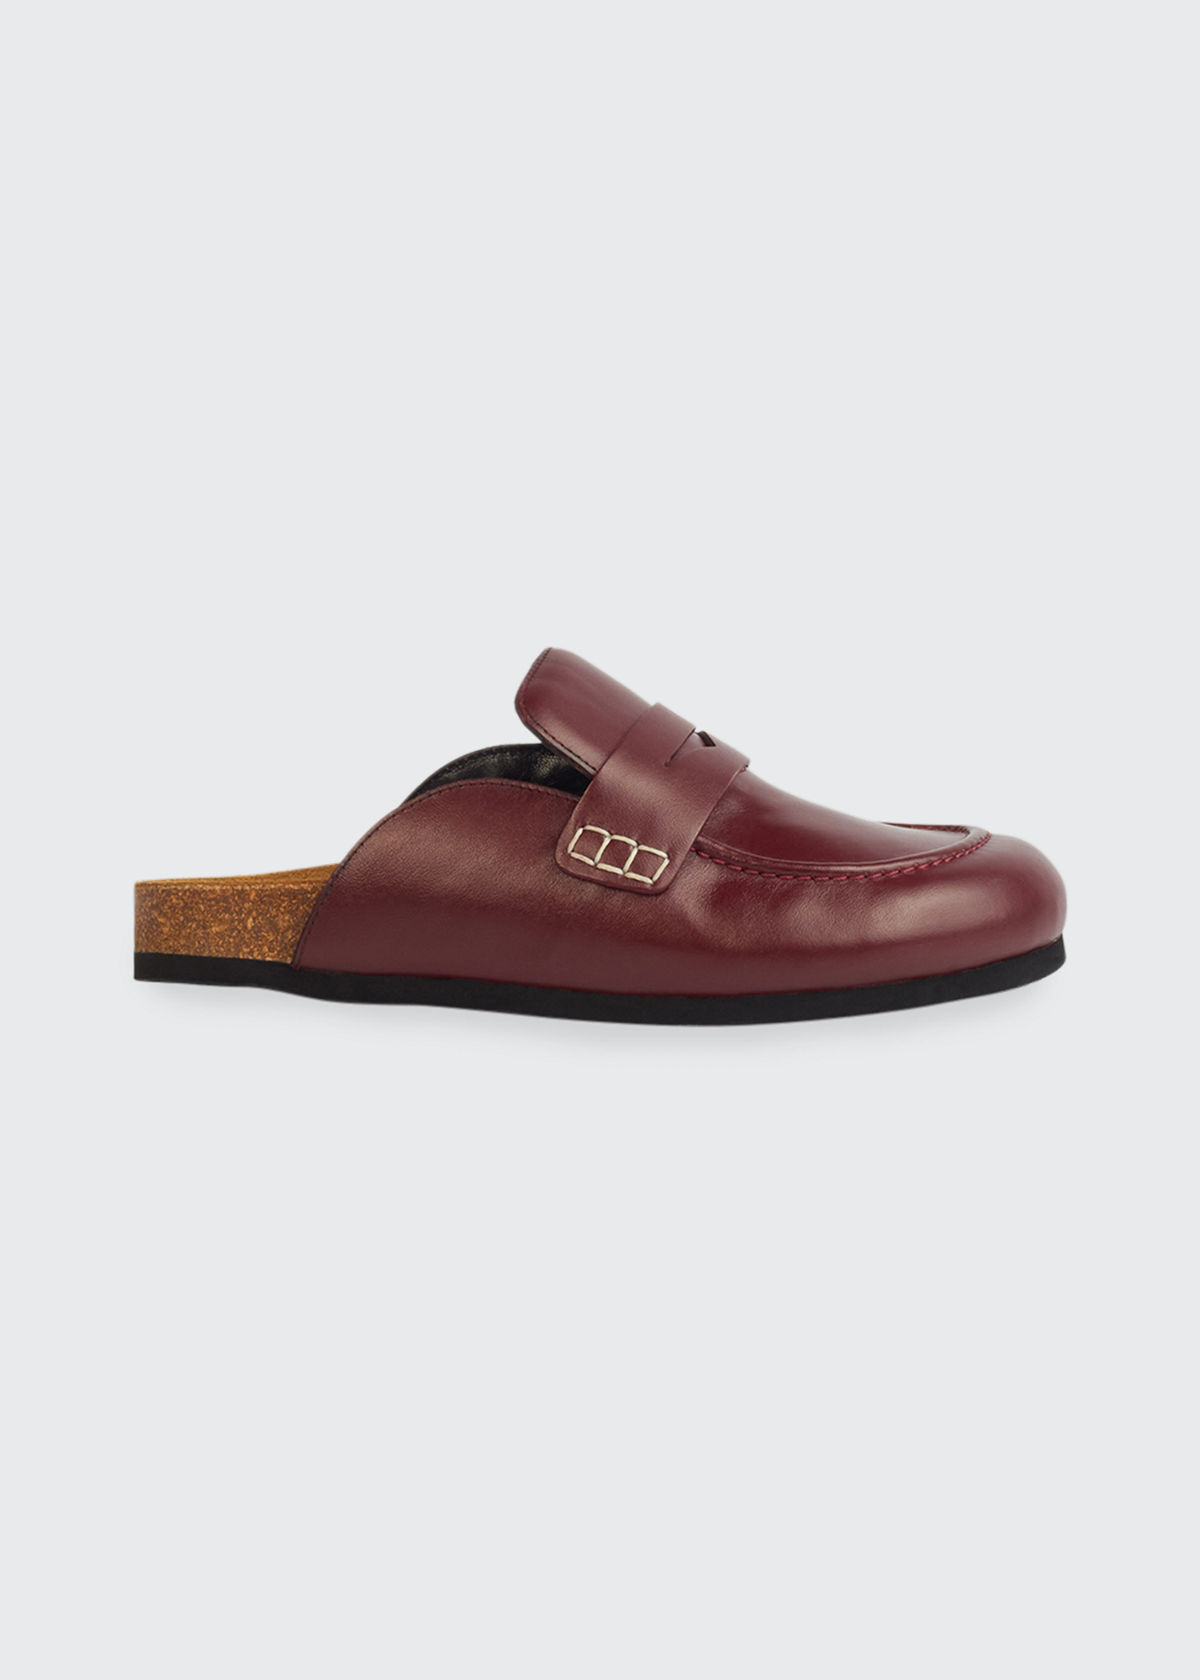 Jw Anderson LEATHER PENNY LOAFER SLIDE MULES